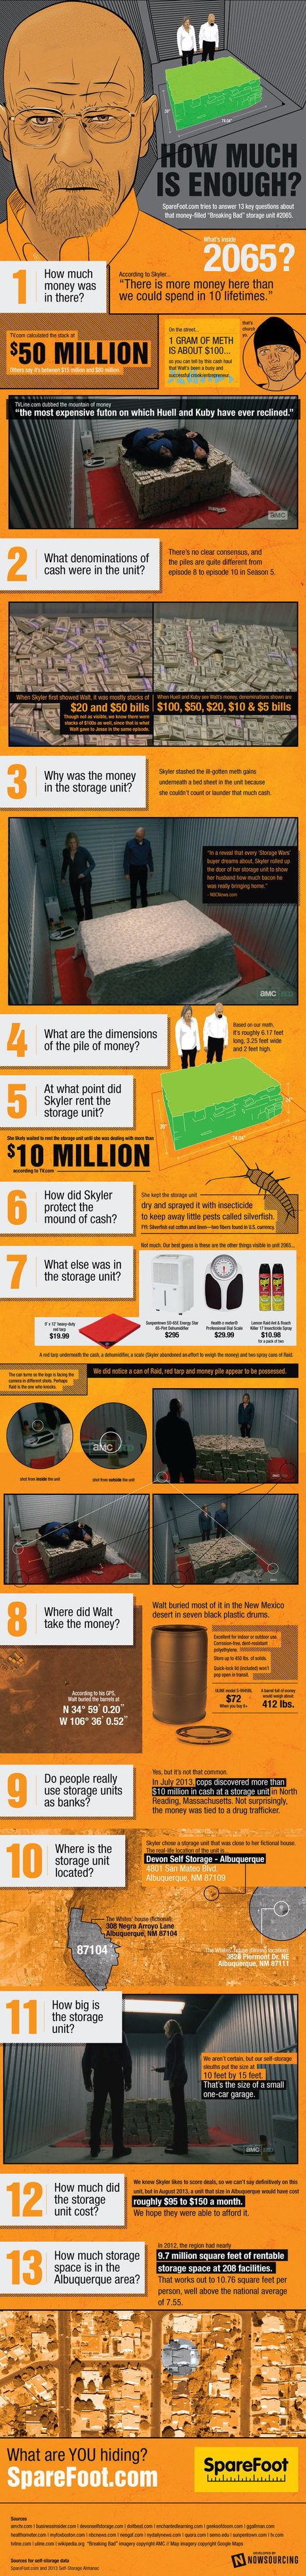 Breaking Bad Storage Unit #2065 [Infographic] | fashion | Scoop.it